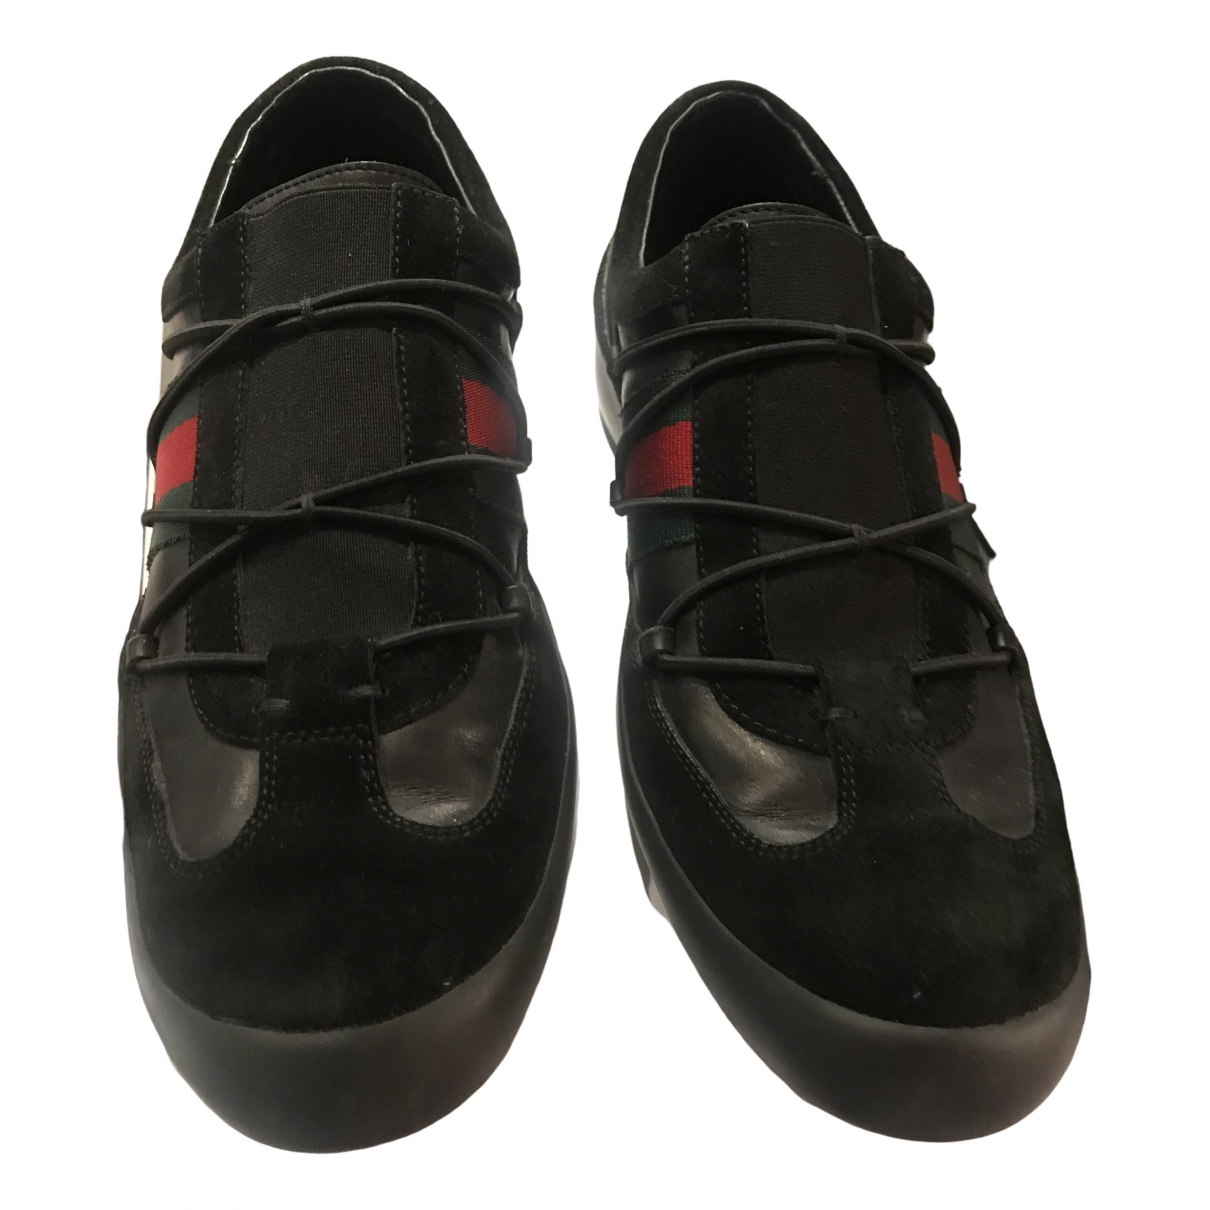 Gucci \N Black Leather Lace ups for Women 39 EU